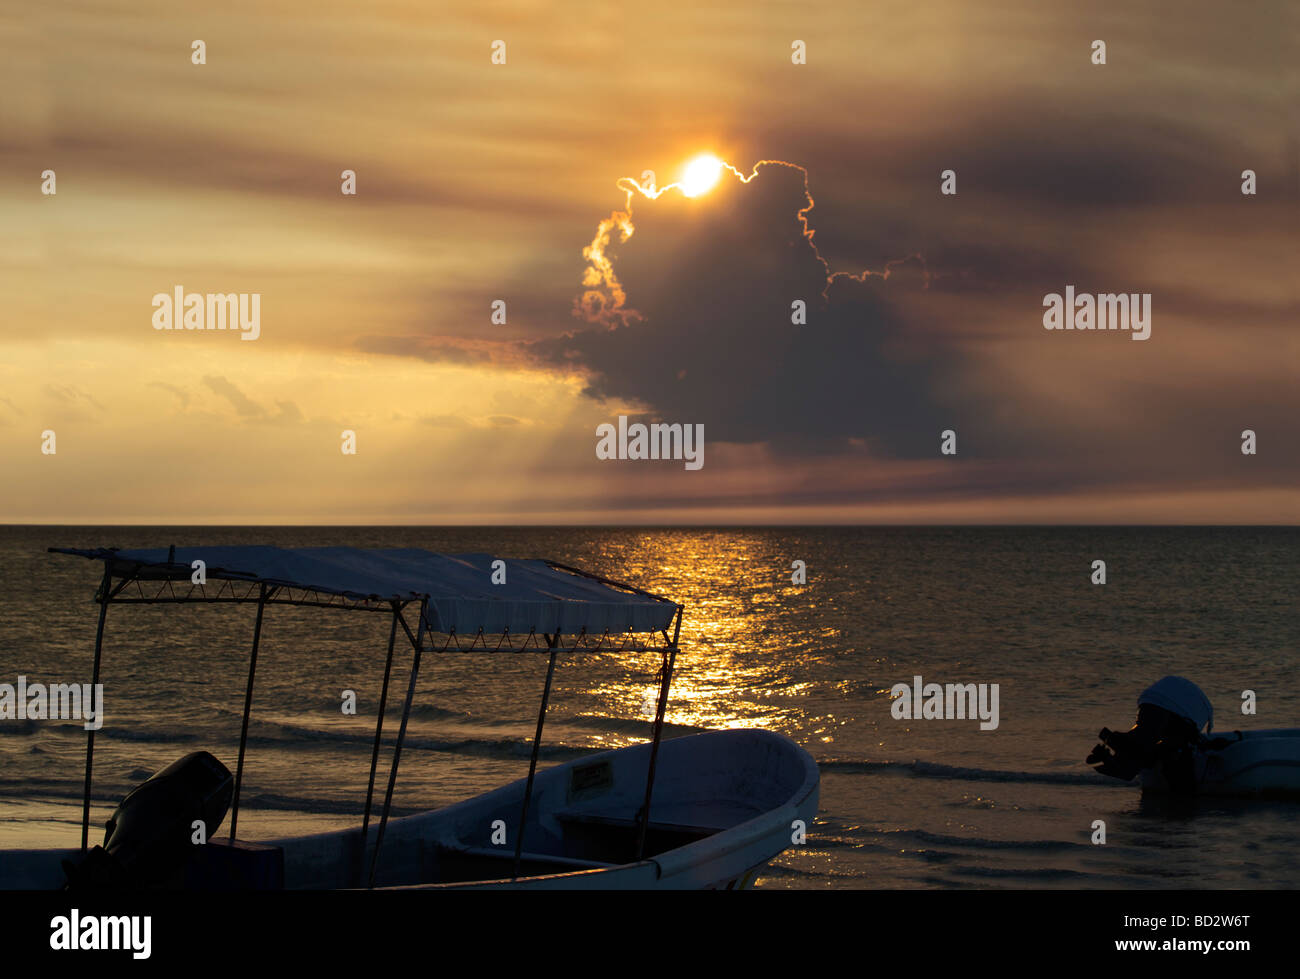 A magnificent sunset over Holbox Island, Quintana Roo, Yucatán Peninsula, Mexico, fishing boat boats clouds - Stock Image